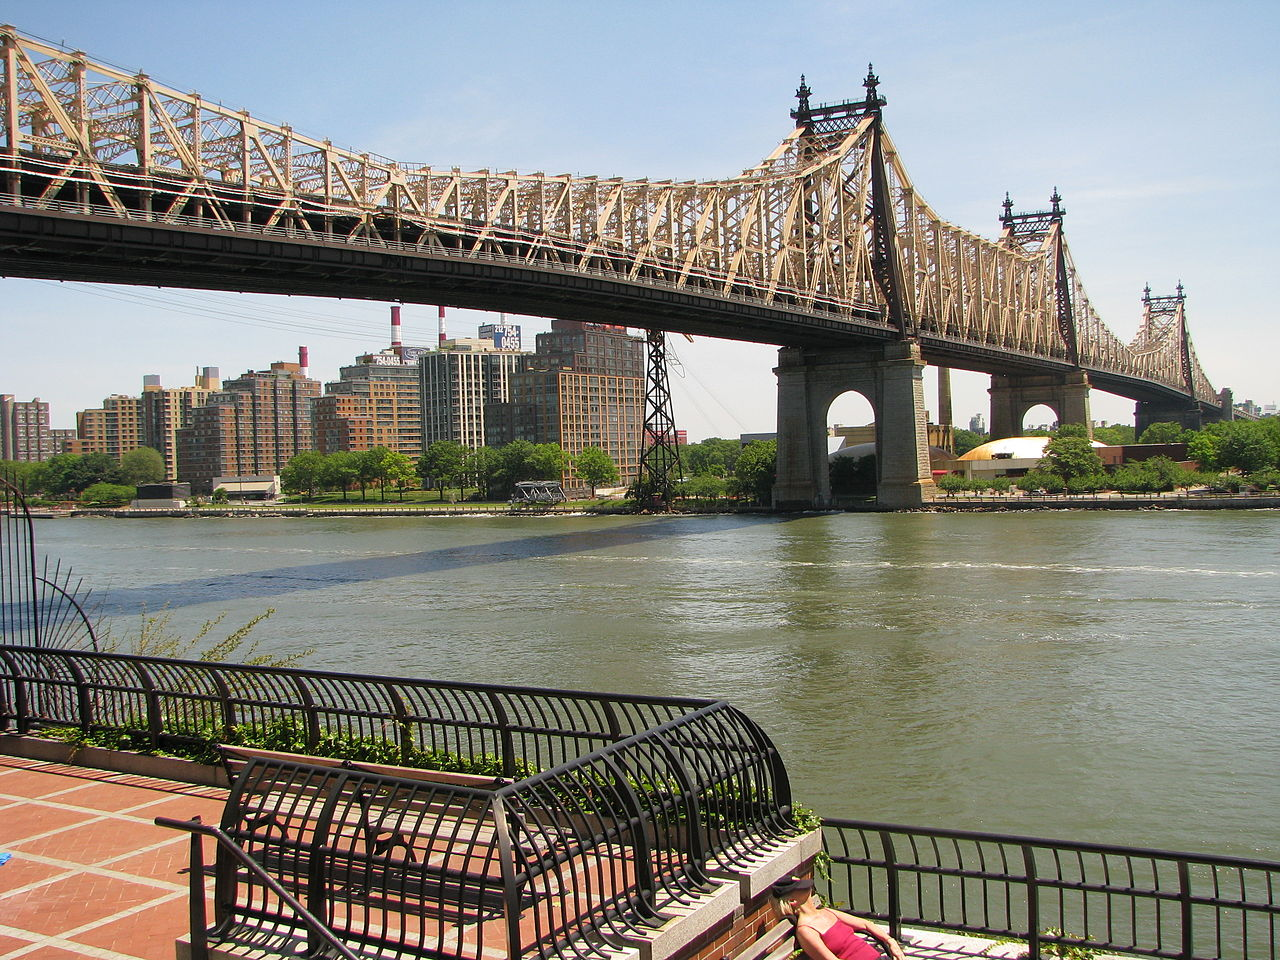 The famed Ed Koch Queensboro Bridge, which connects Queens and Manhattan. Source: Wikipedia